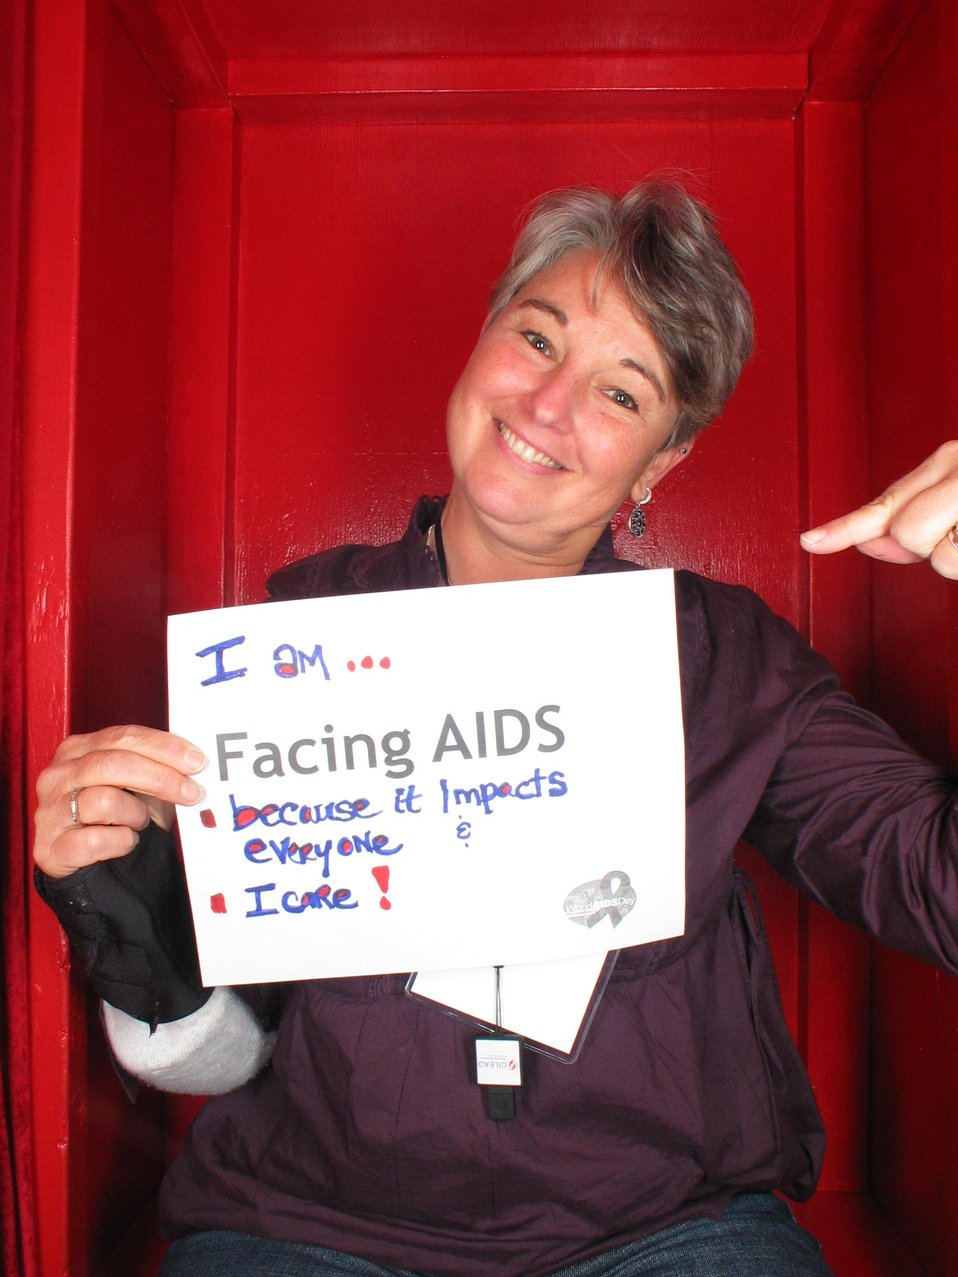 I am Facing AIDS because it impacts everyone I love!